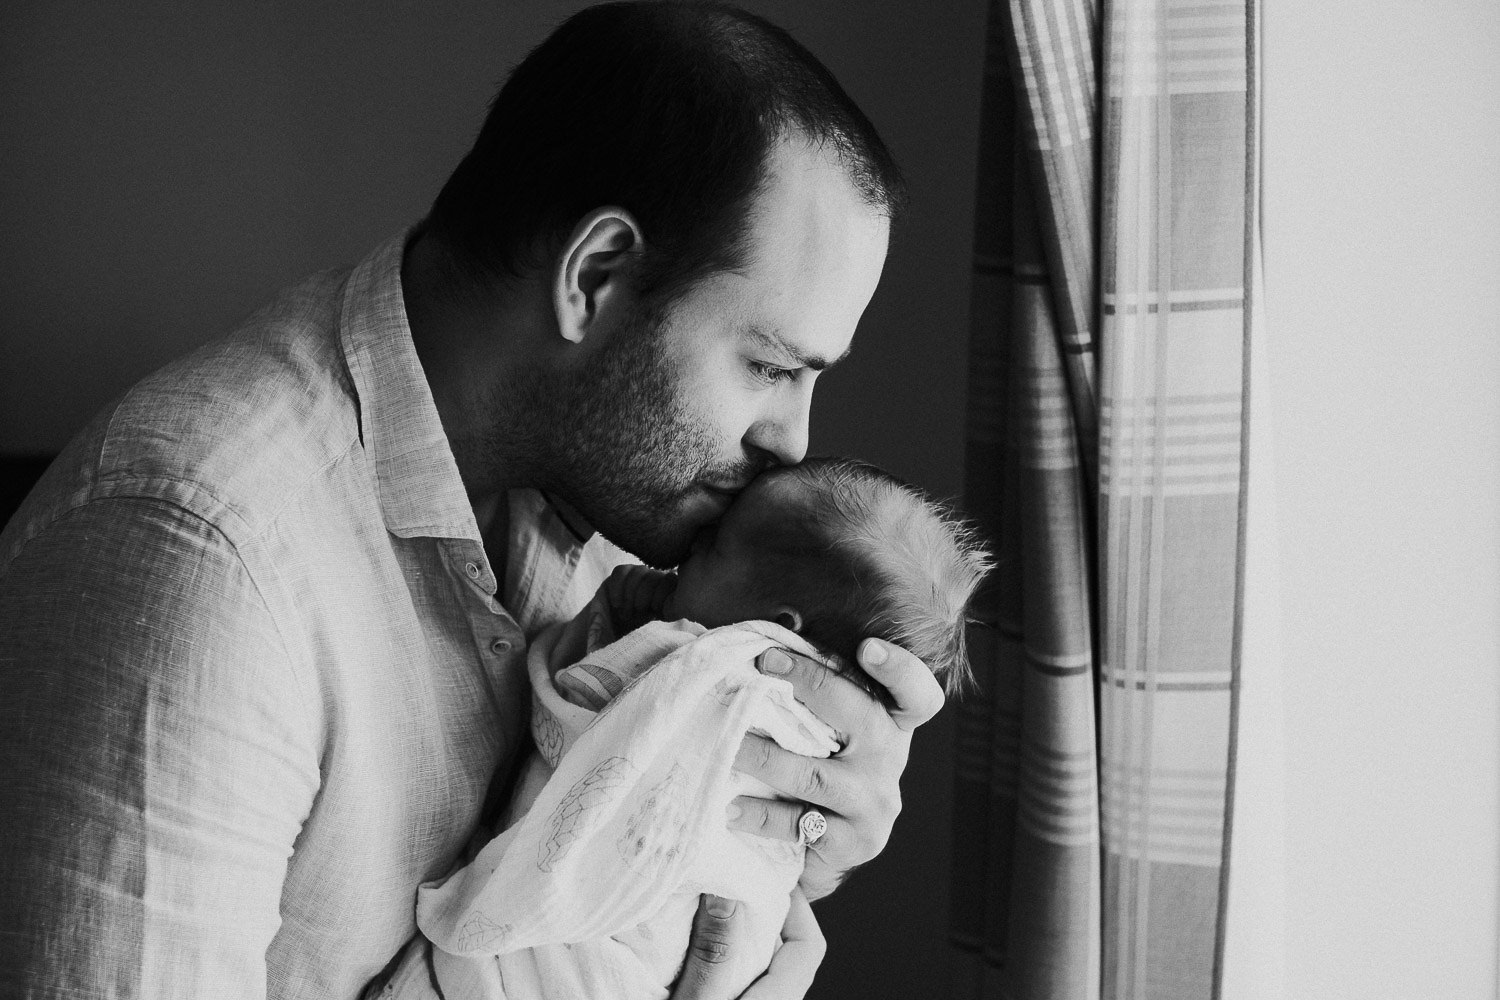 HANDSOME DAD AND NEWBORN BABY BLACK AND WHITE PHOTO FULHAM NEWBORN PHOTOGRAPHER